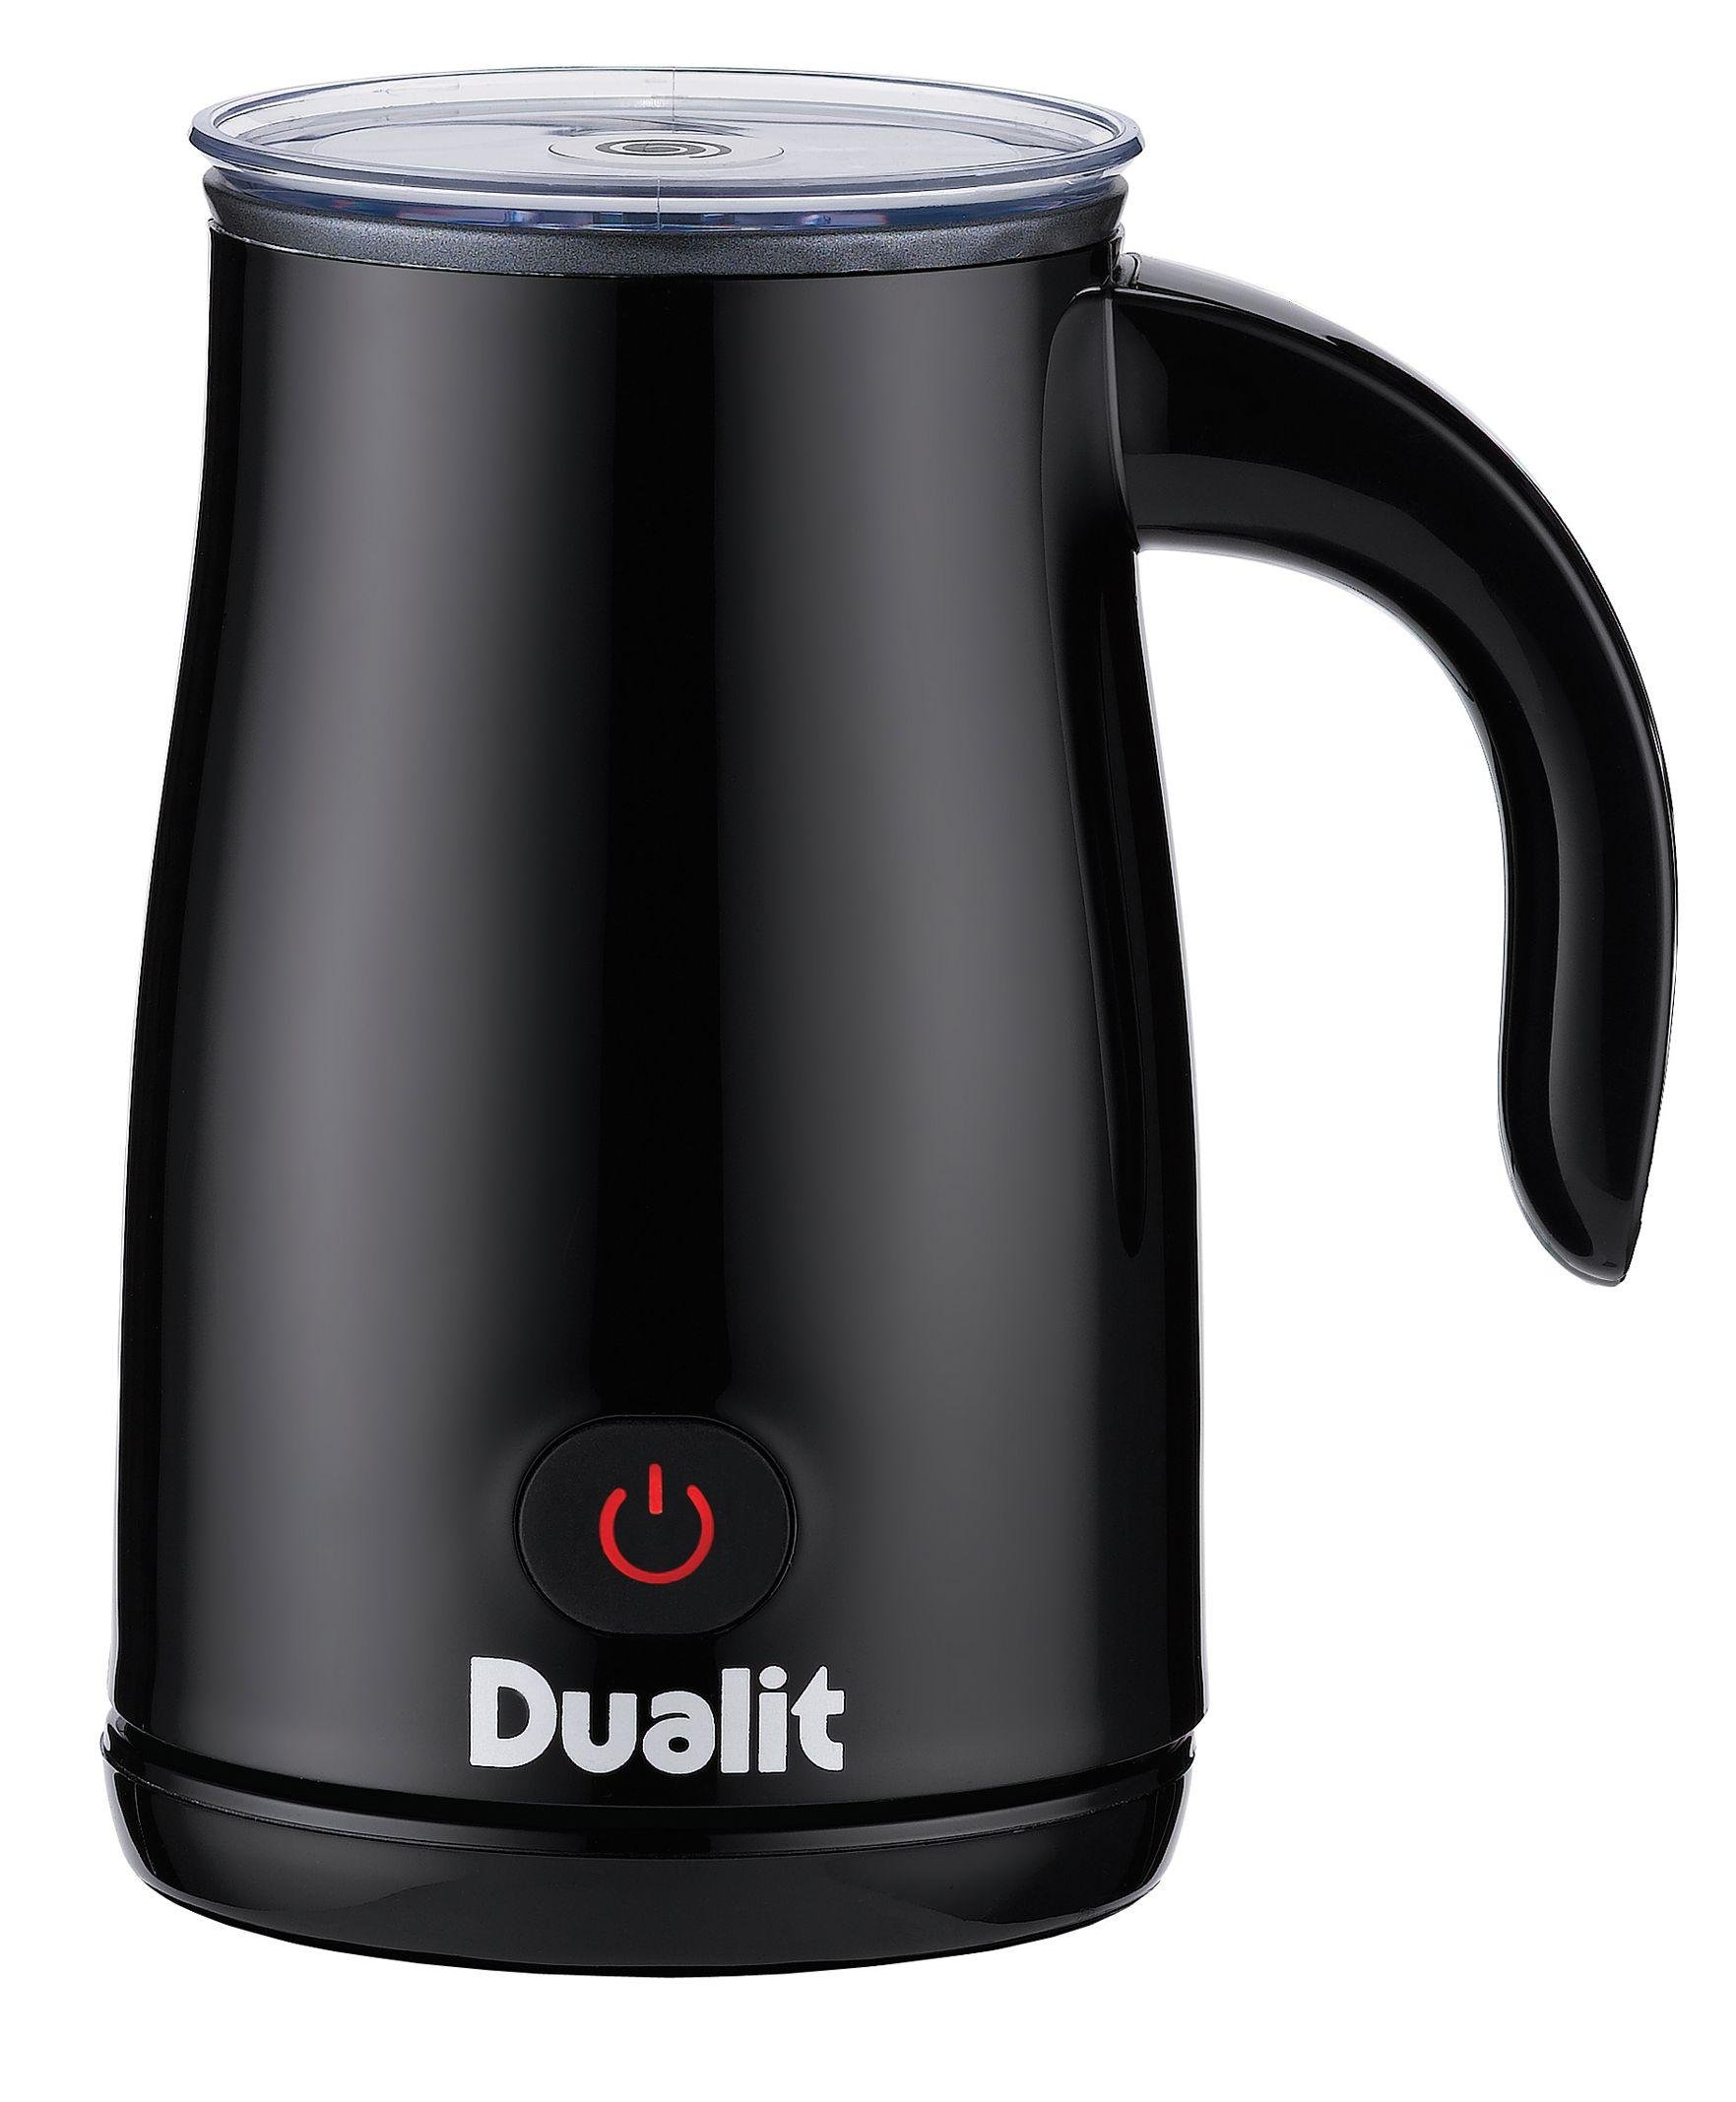 Image of Dualit 84135 Milk Frother - Black